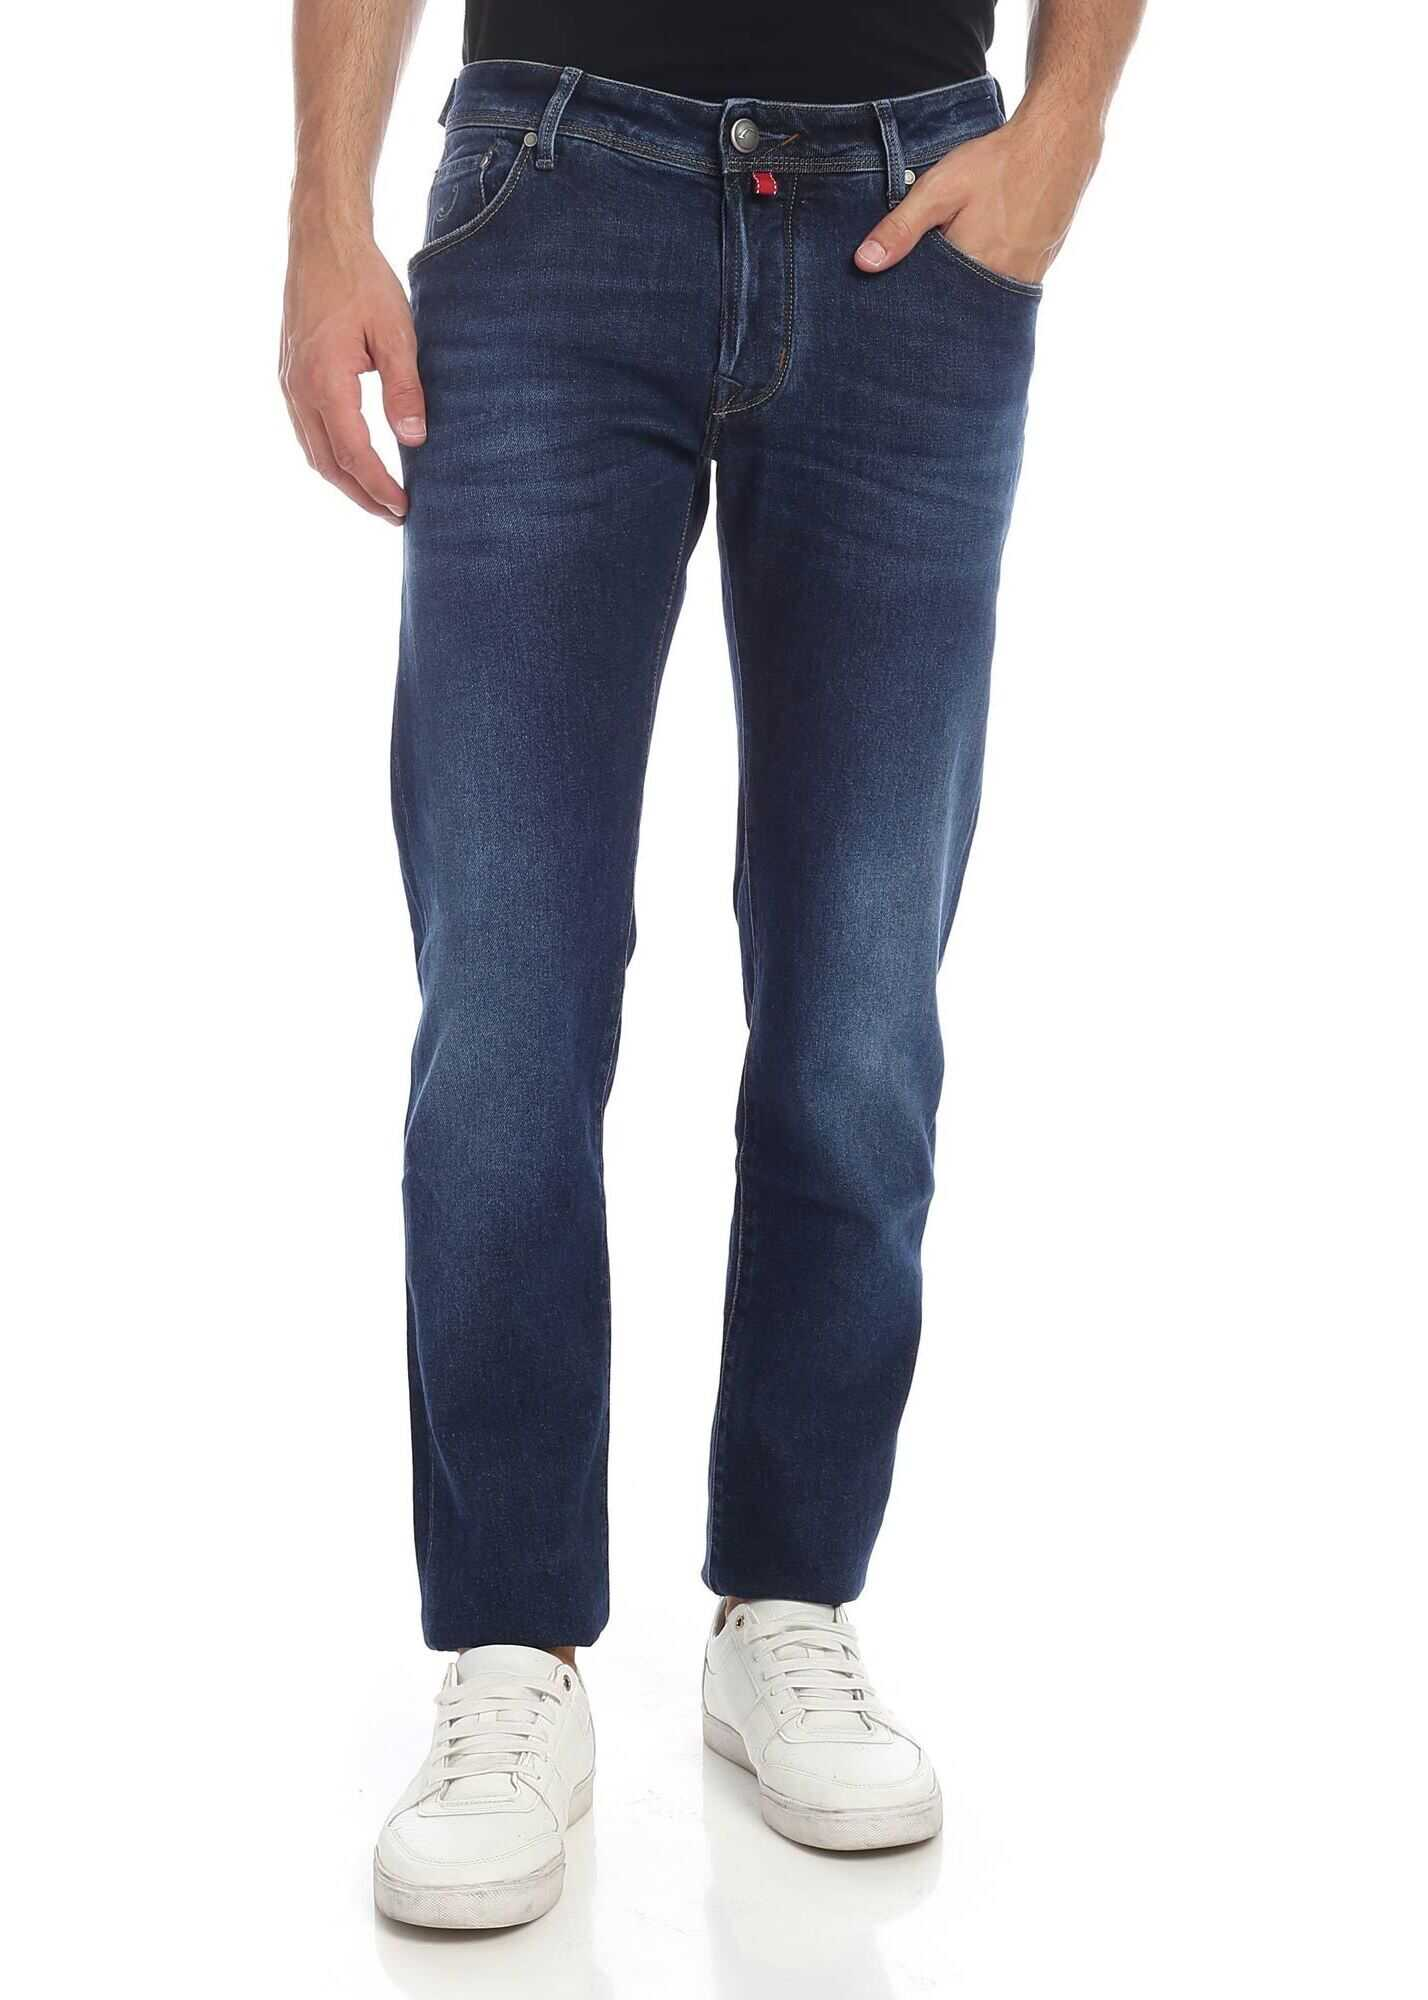 Jacob Cohen Jeans In Indigo Blue Color With Red Logo Blue imagine